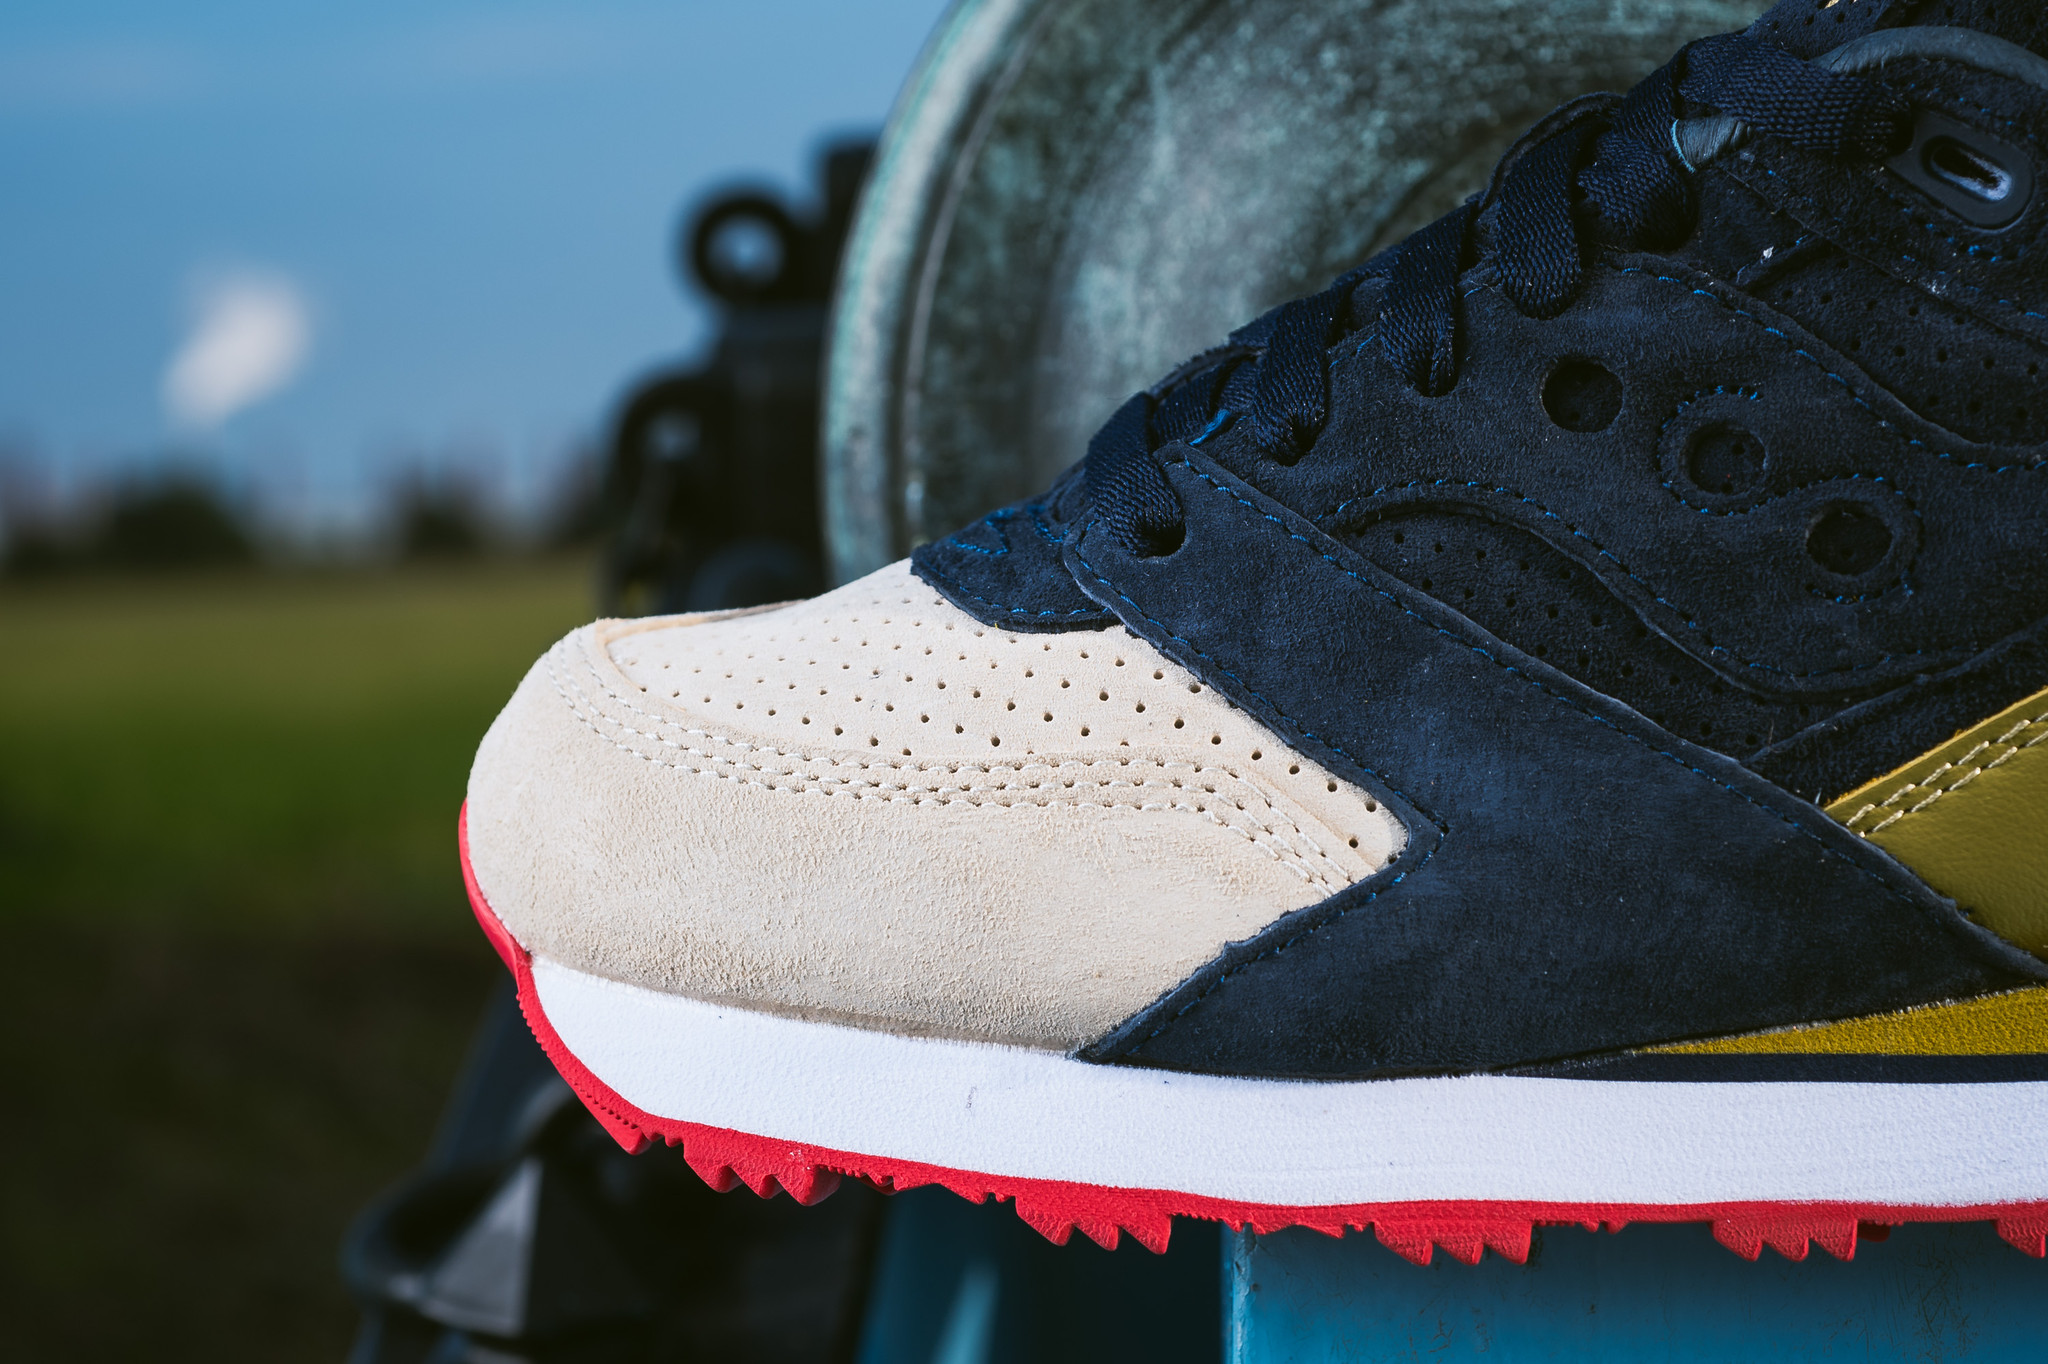 Sneaker_POlitics_X_Saucony_Courageous_Andrew_Jackson_Sneaker_POlitics_Battle_of_New_Orleans_Nola_4